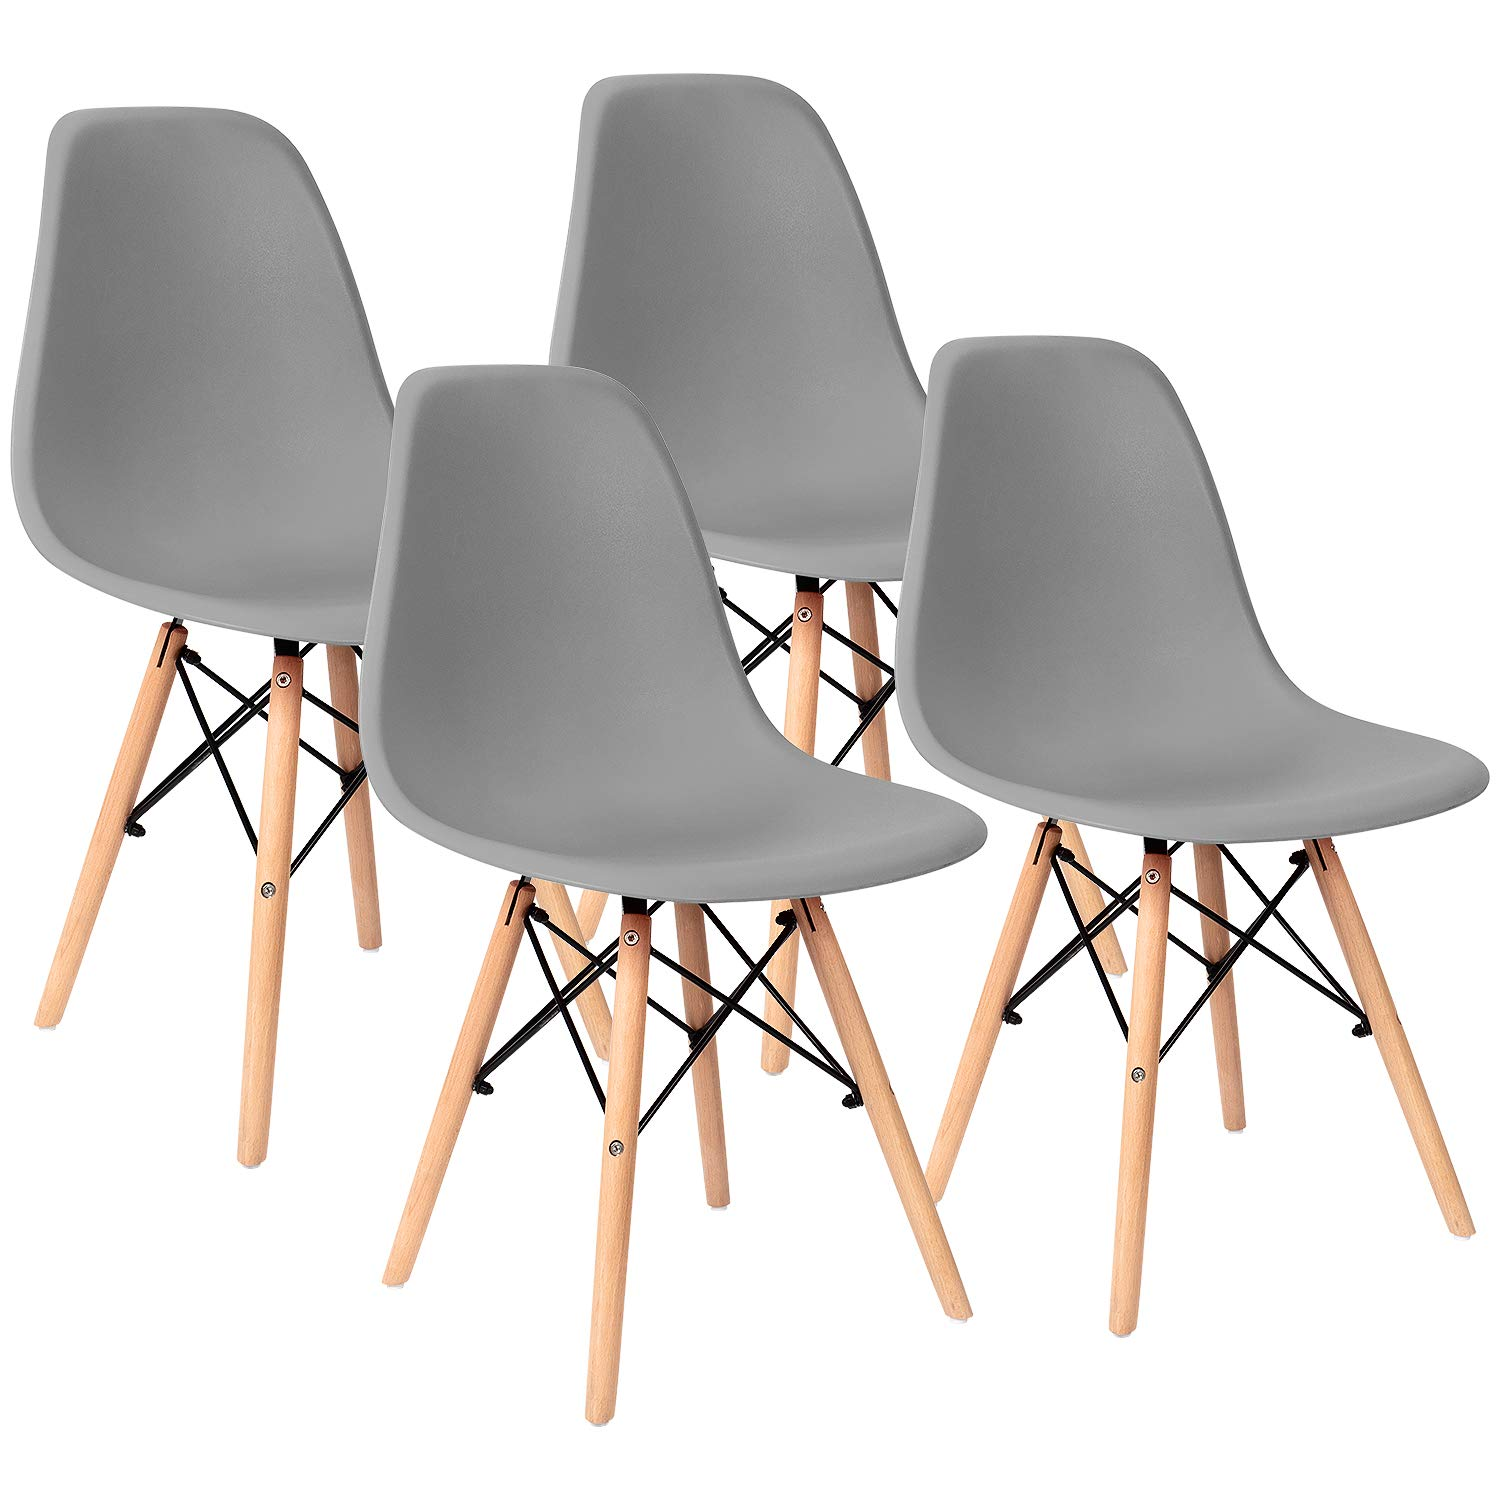 Furniwell Pre Assembled Modern Style Dining Chairs Mid Century Eiffel DSW Side Chair Indoor Armless Plastic Shell Chairs for Dining Room, Kitchen, Living Room, Bedroom Set of 4 (Gray)